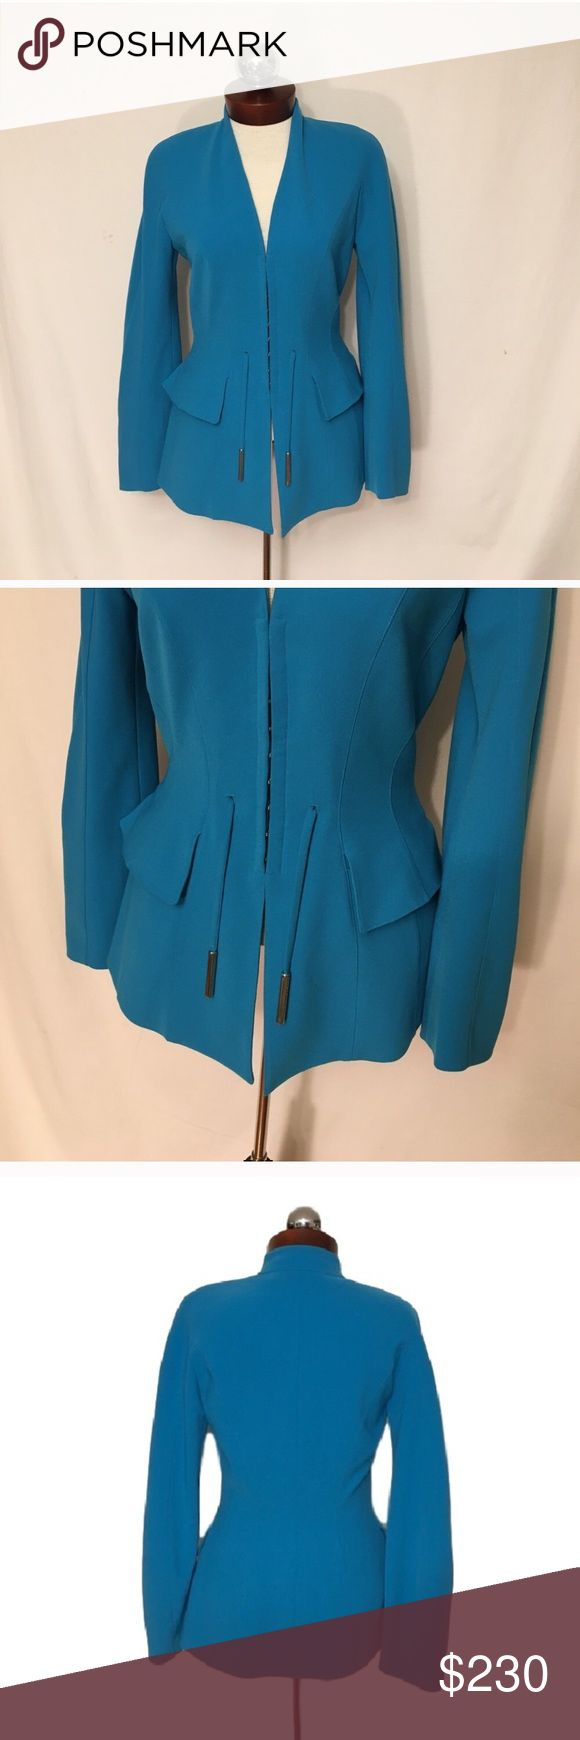 Thierry MUGLER $2300 hook eye logo fitted jacket Thierry MUGLER jacket bright logo pulls 36  Jacket shows two dots of slight discoloration at the left sleeve, as shown in photos. Wear to intetior tag. Otherwise, excellent condition!    light shoulder padding   Fully lined  multiple hook/eye closures at front  MUGLER at silvertone drawstring pulls  *matching pants (36) are available, if interested. Will require seam repair. Please inquire for measurements and photos.   Jacket Measurements in…